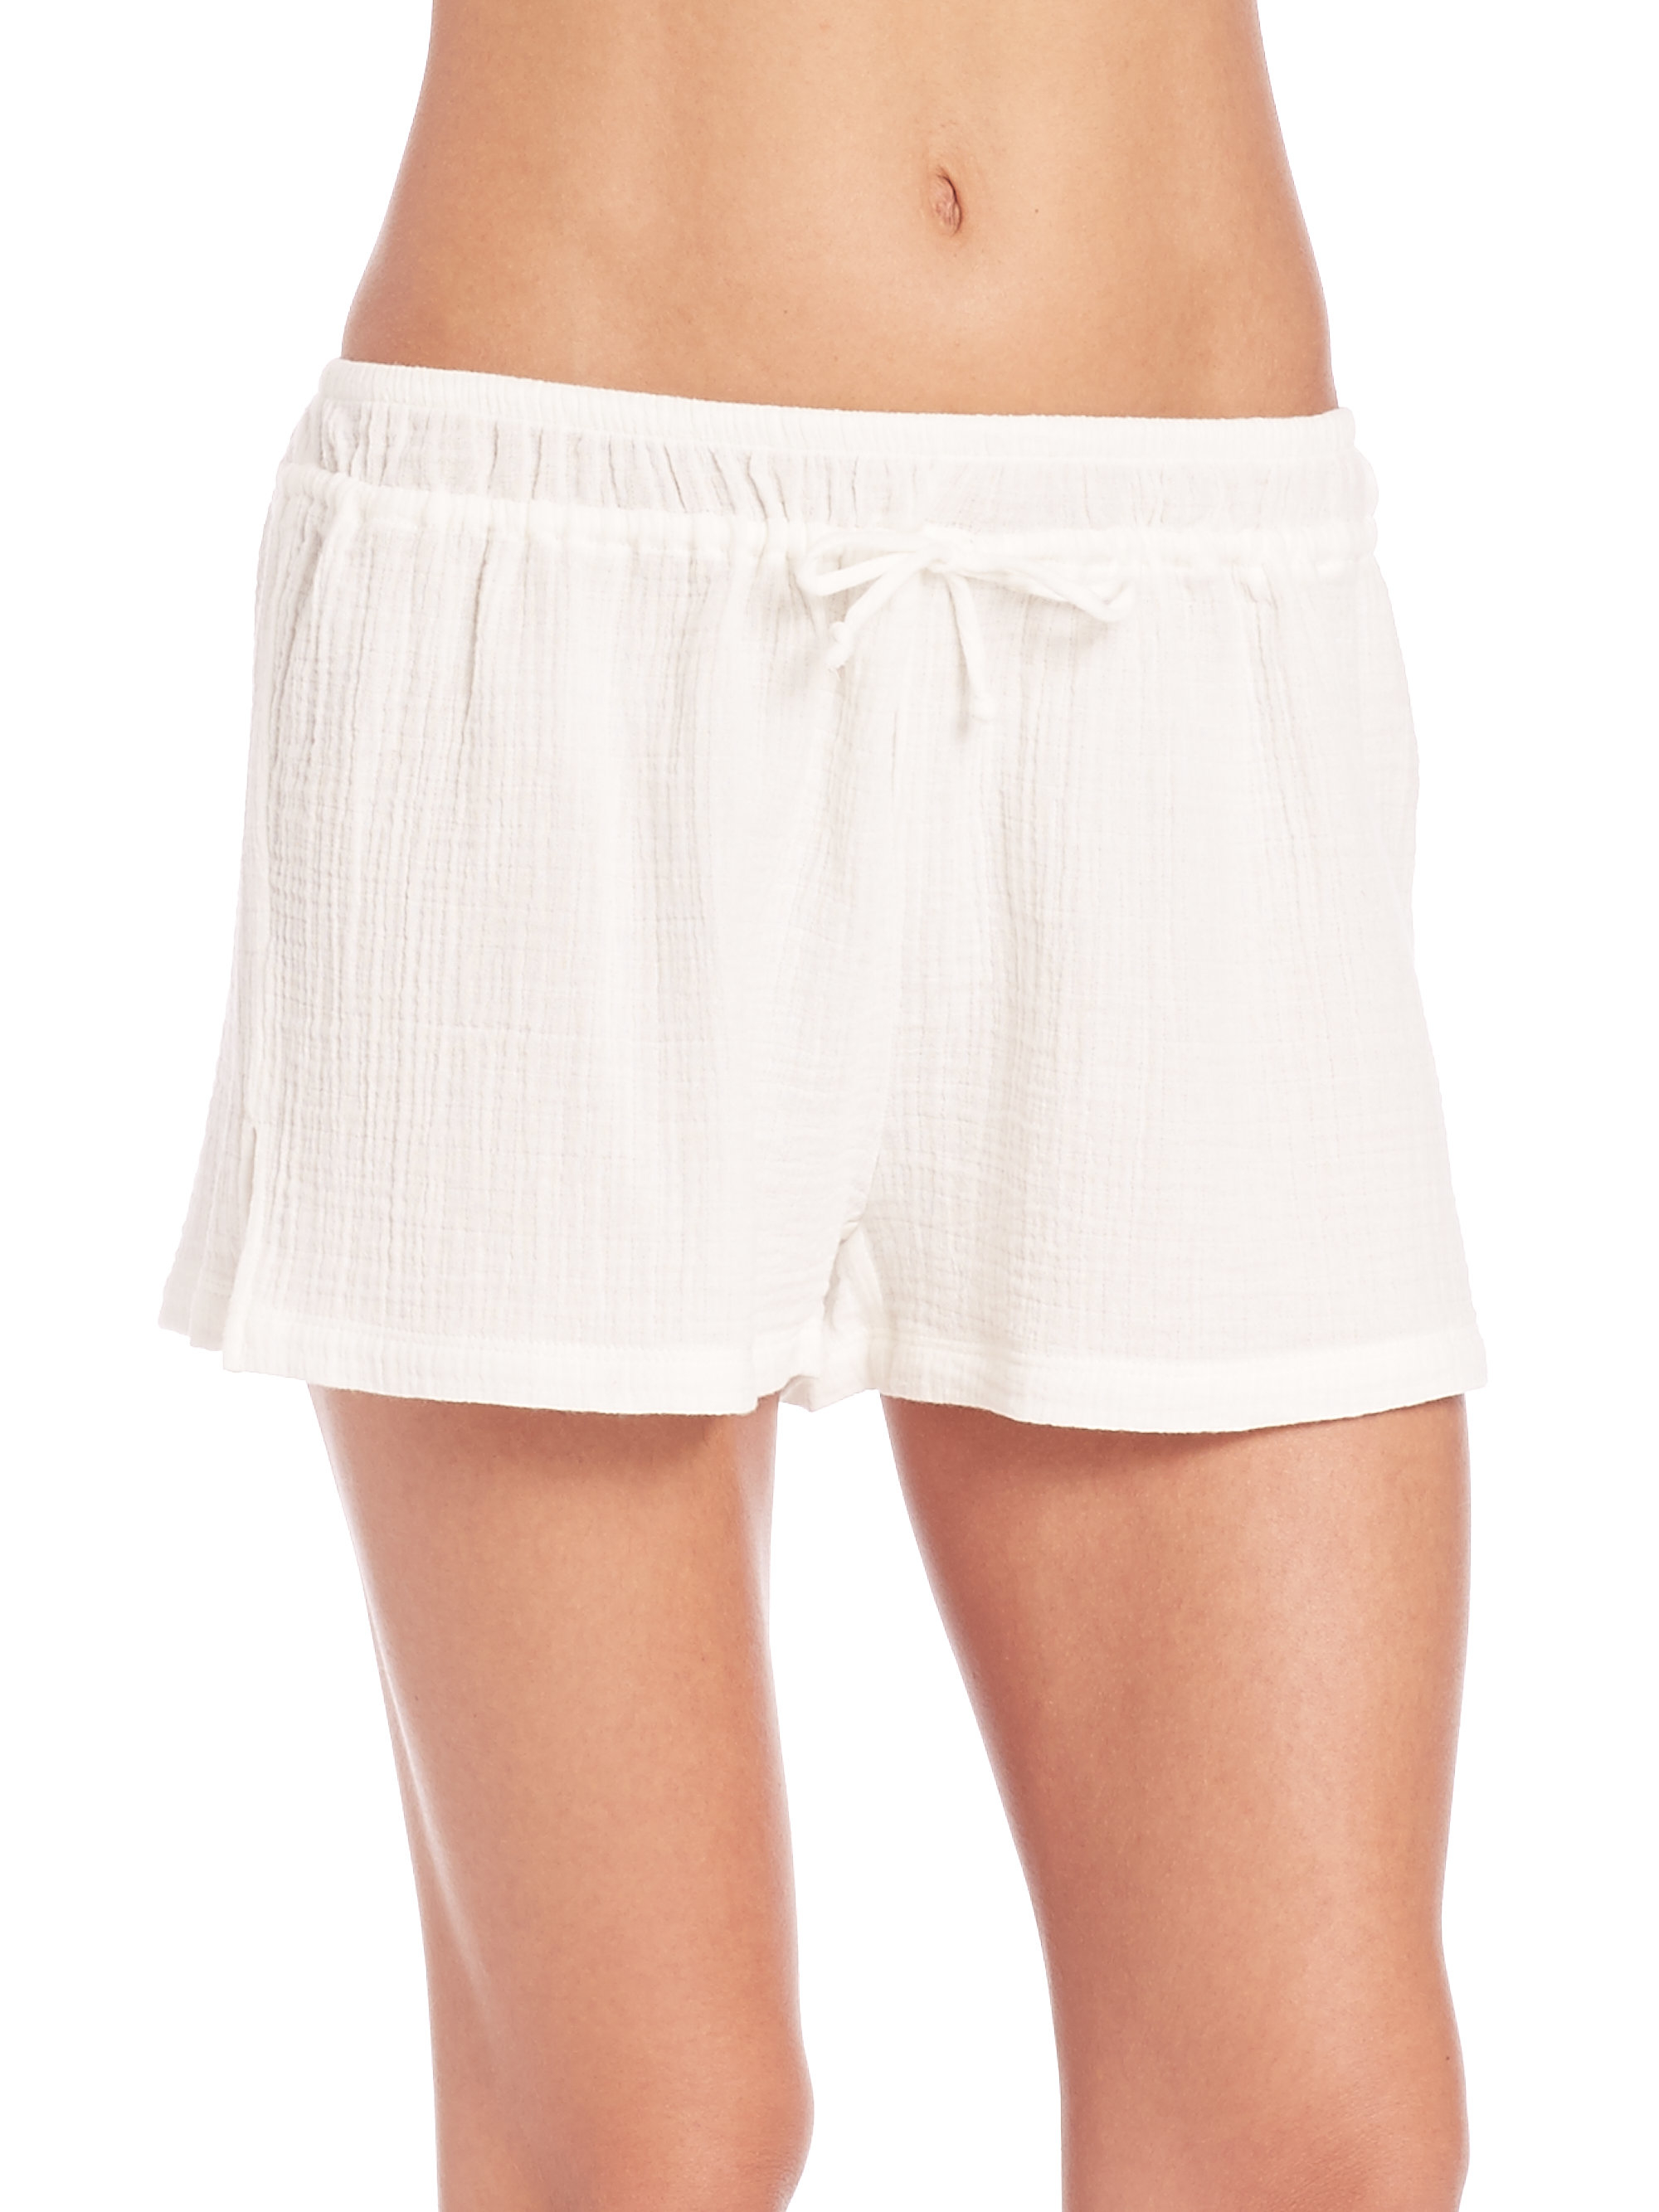 Skin Cotton Gauze Shorts in White | Lyst